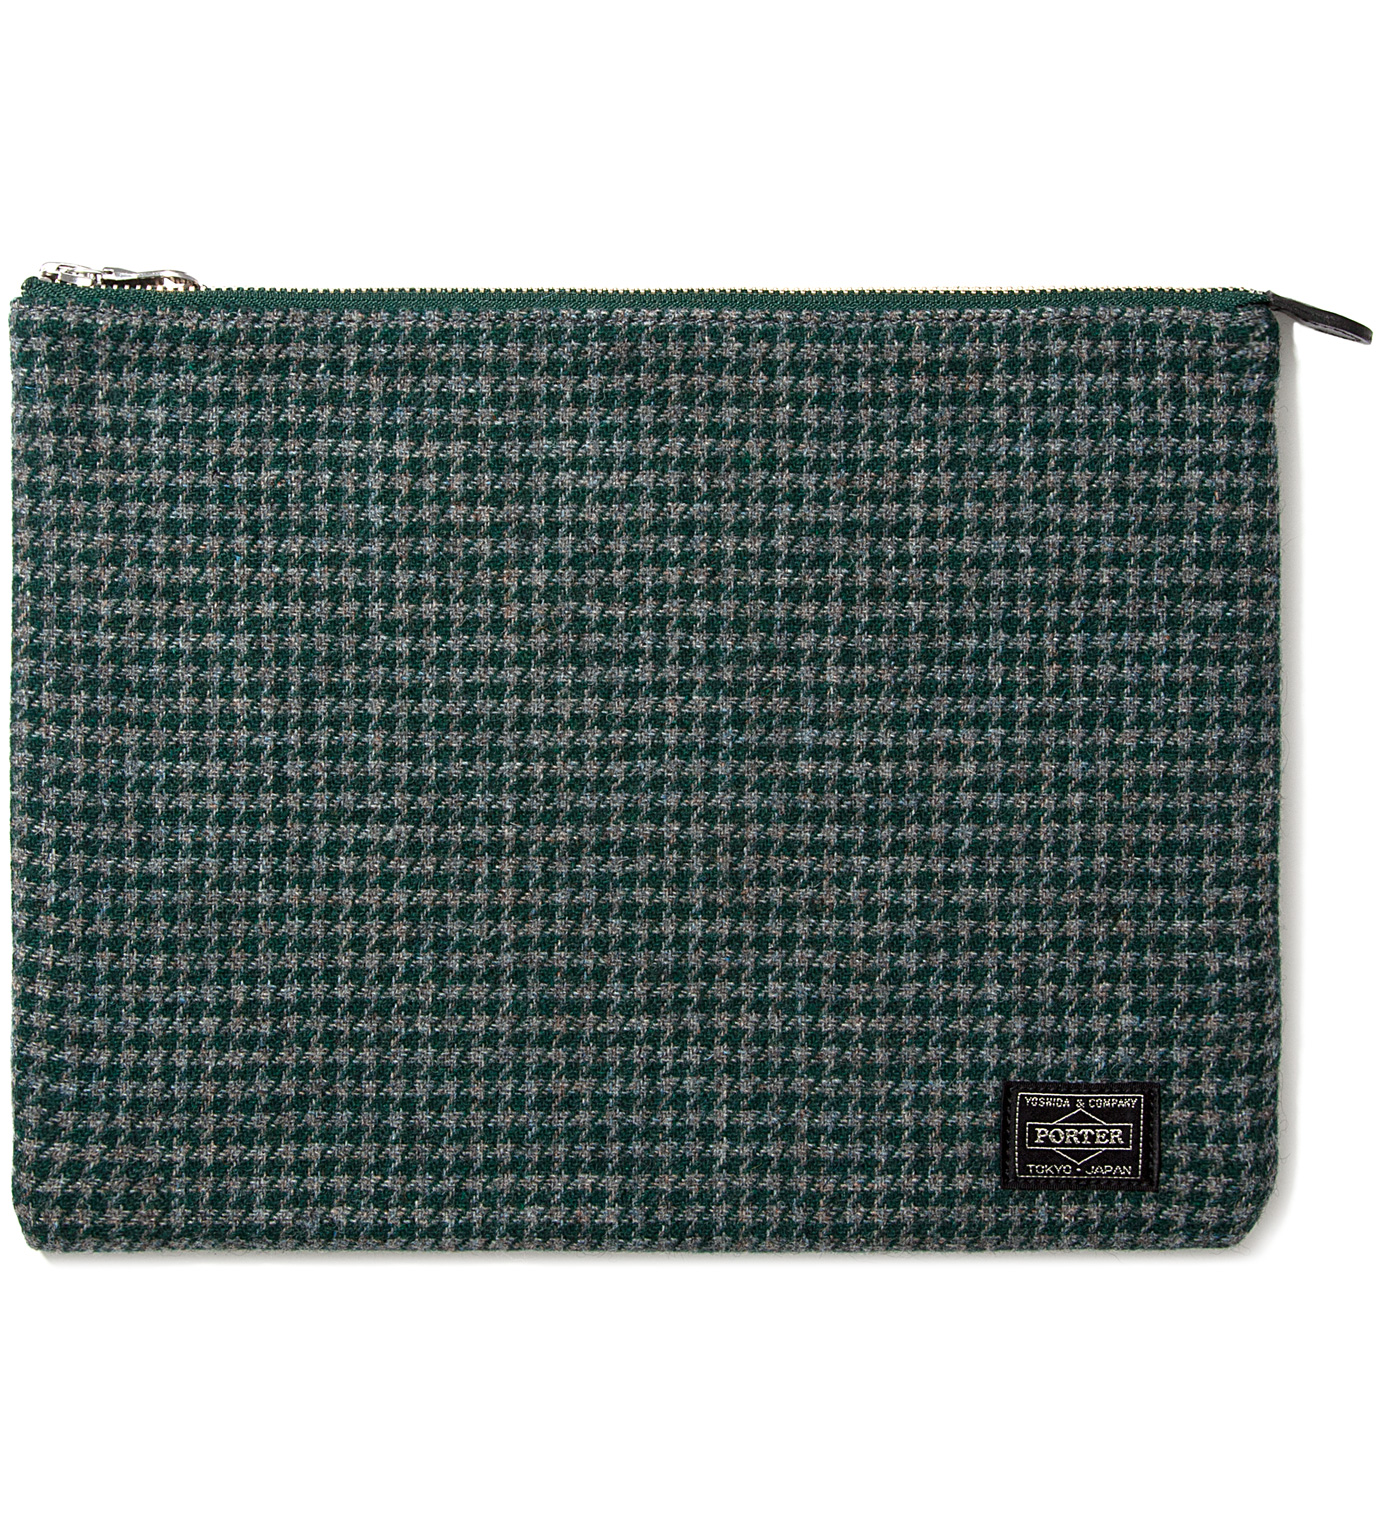 PHENOMENON Green Porter Pouch (Houndstooth Check)